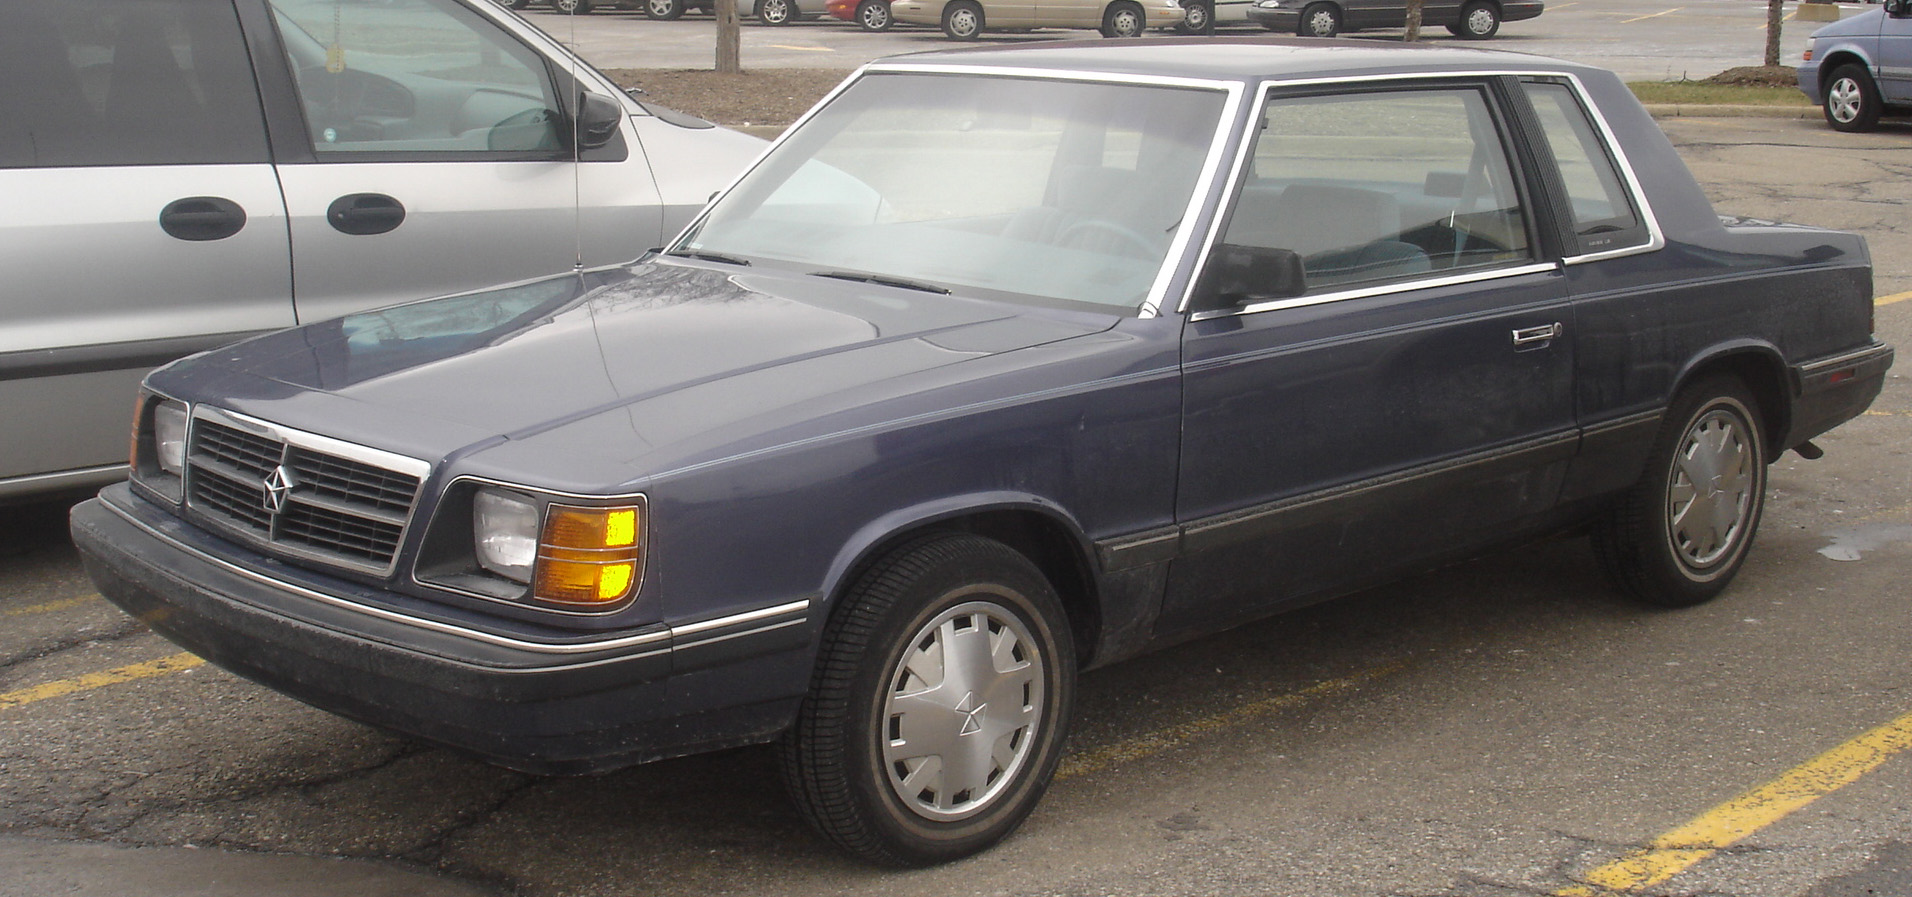 1987 Plymouth Reliant #6